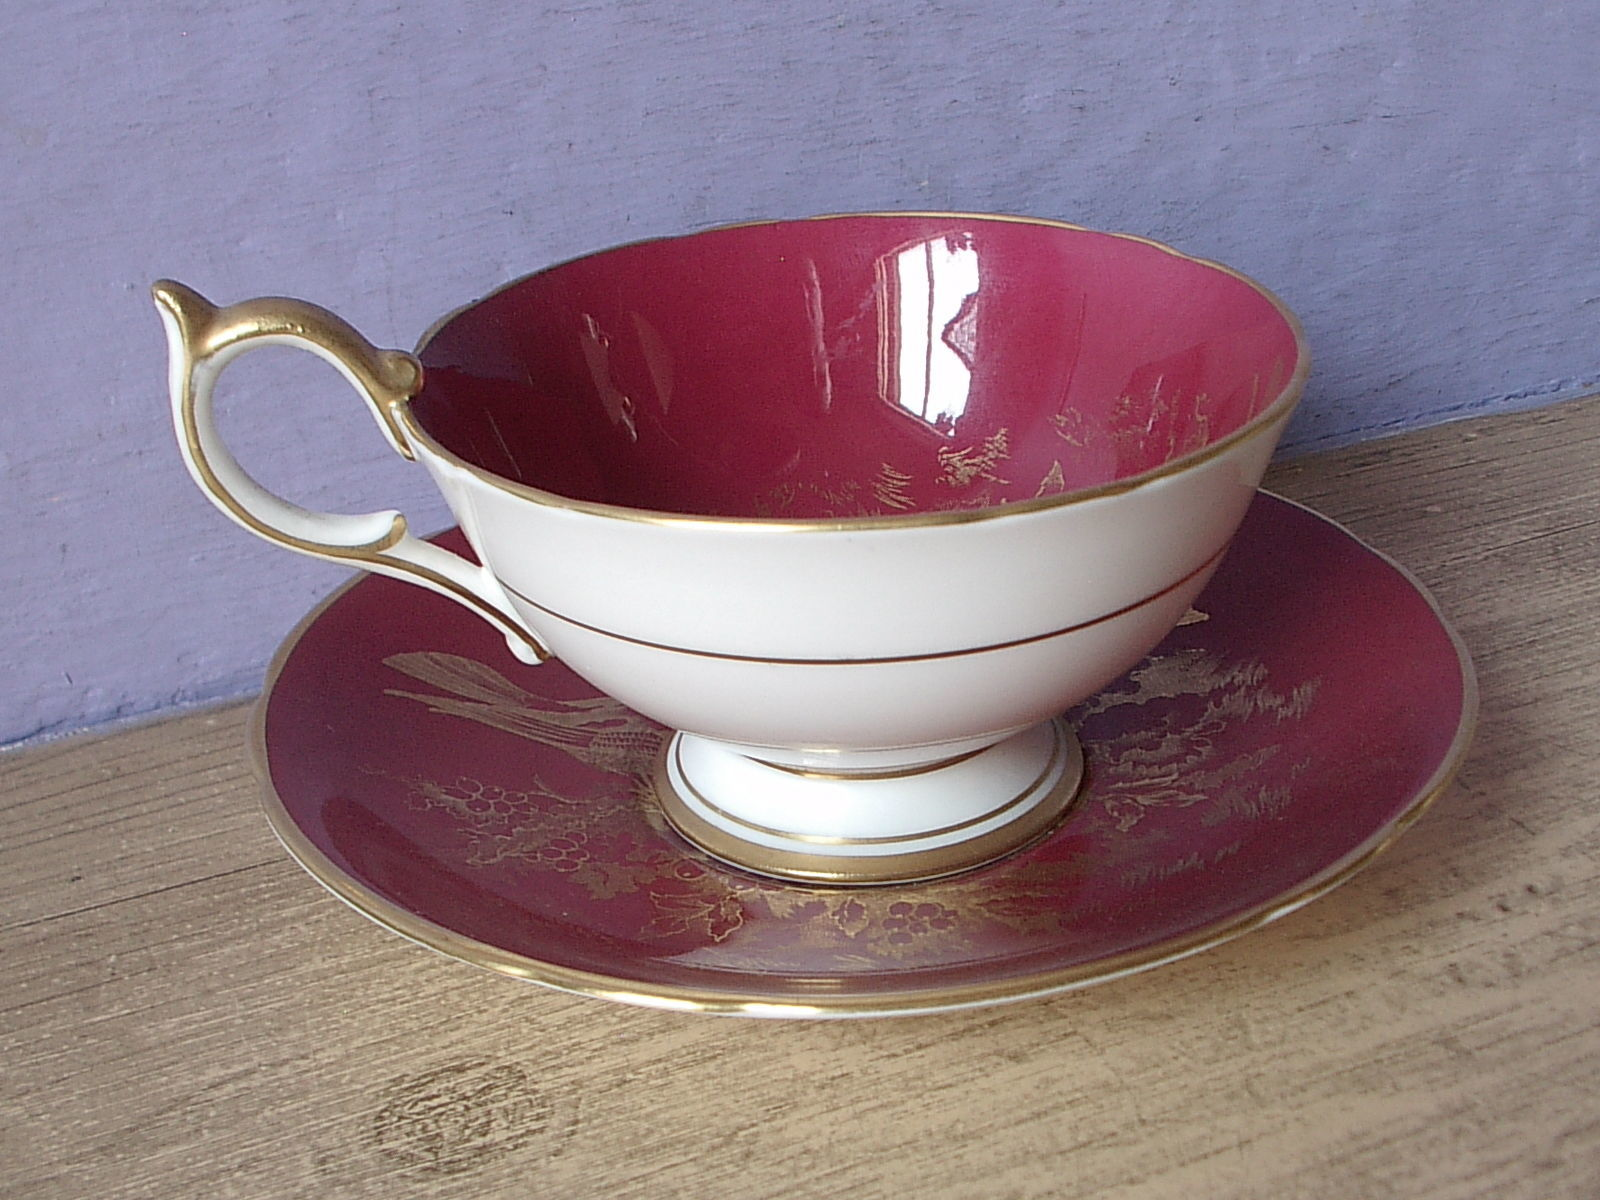 RARE Vintage 1950's Aynsley English bone china red and gold birds tea cup teacup image 5